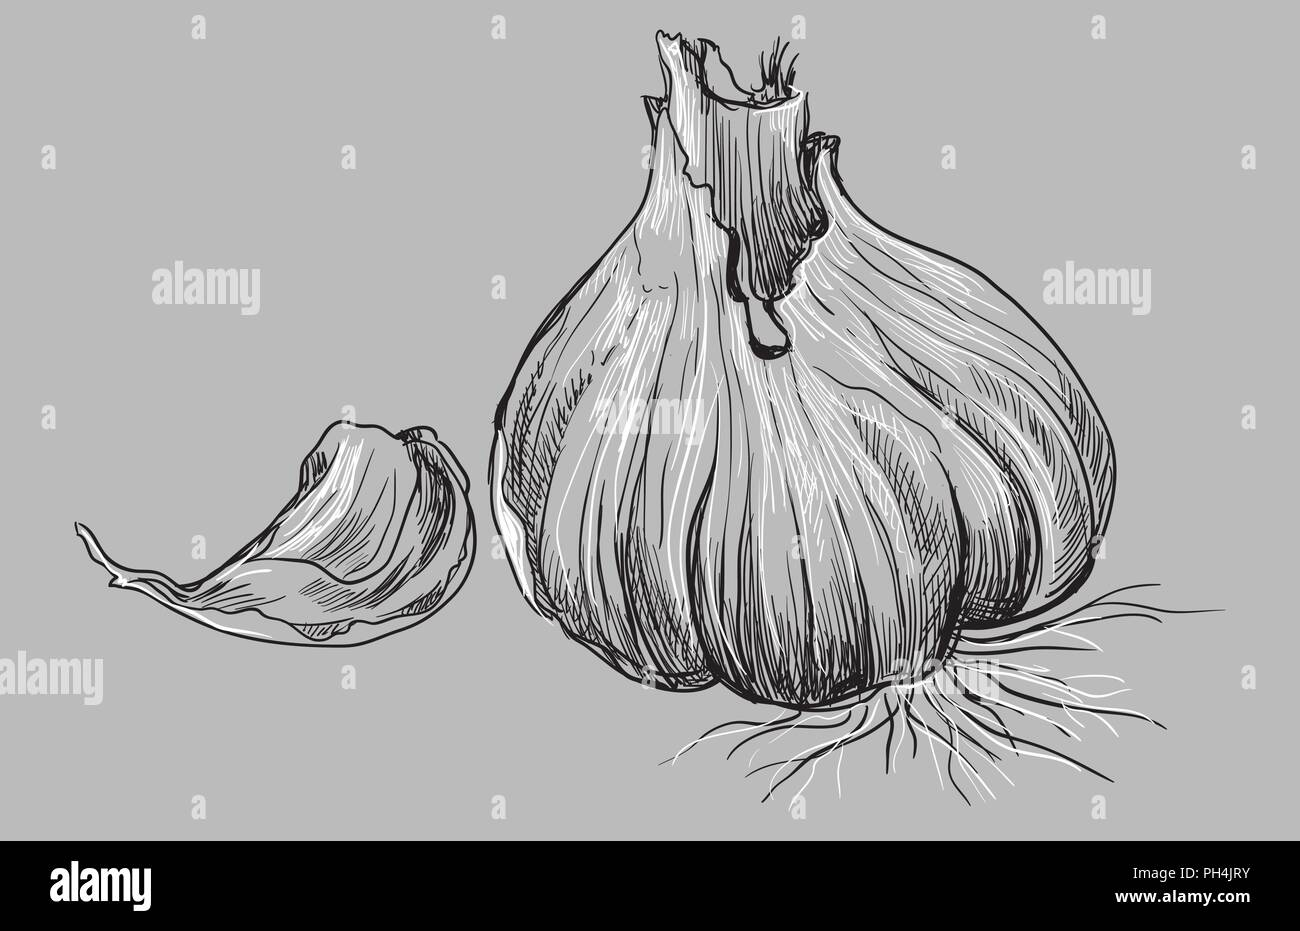 Hand drawn vegetable-garlic. Vector monochrome illustration isolated on grey background. - Stock Vector